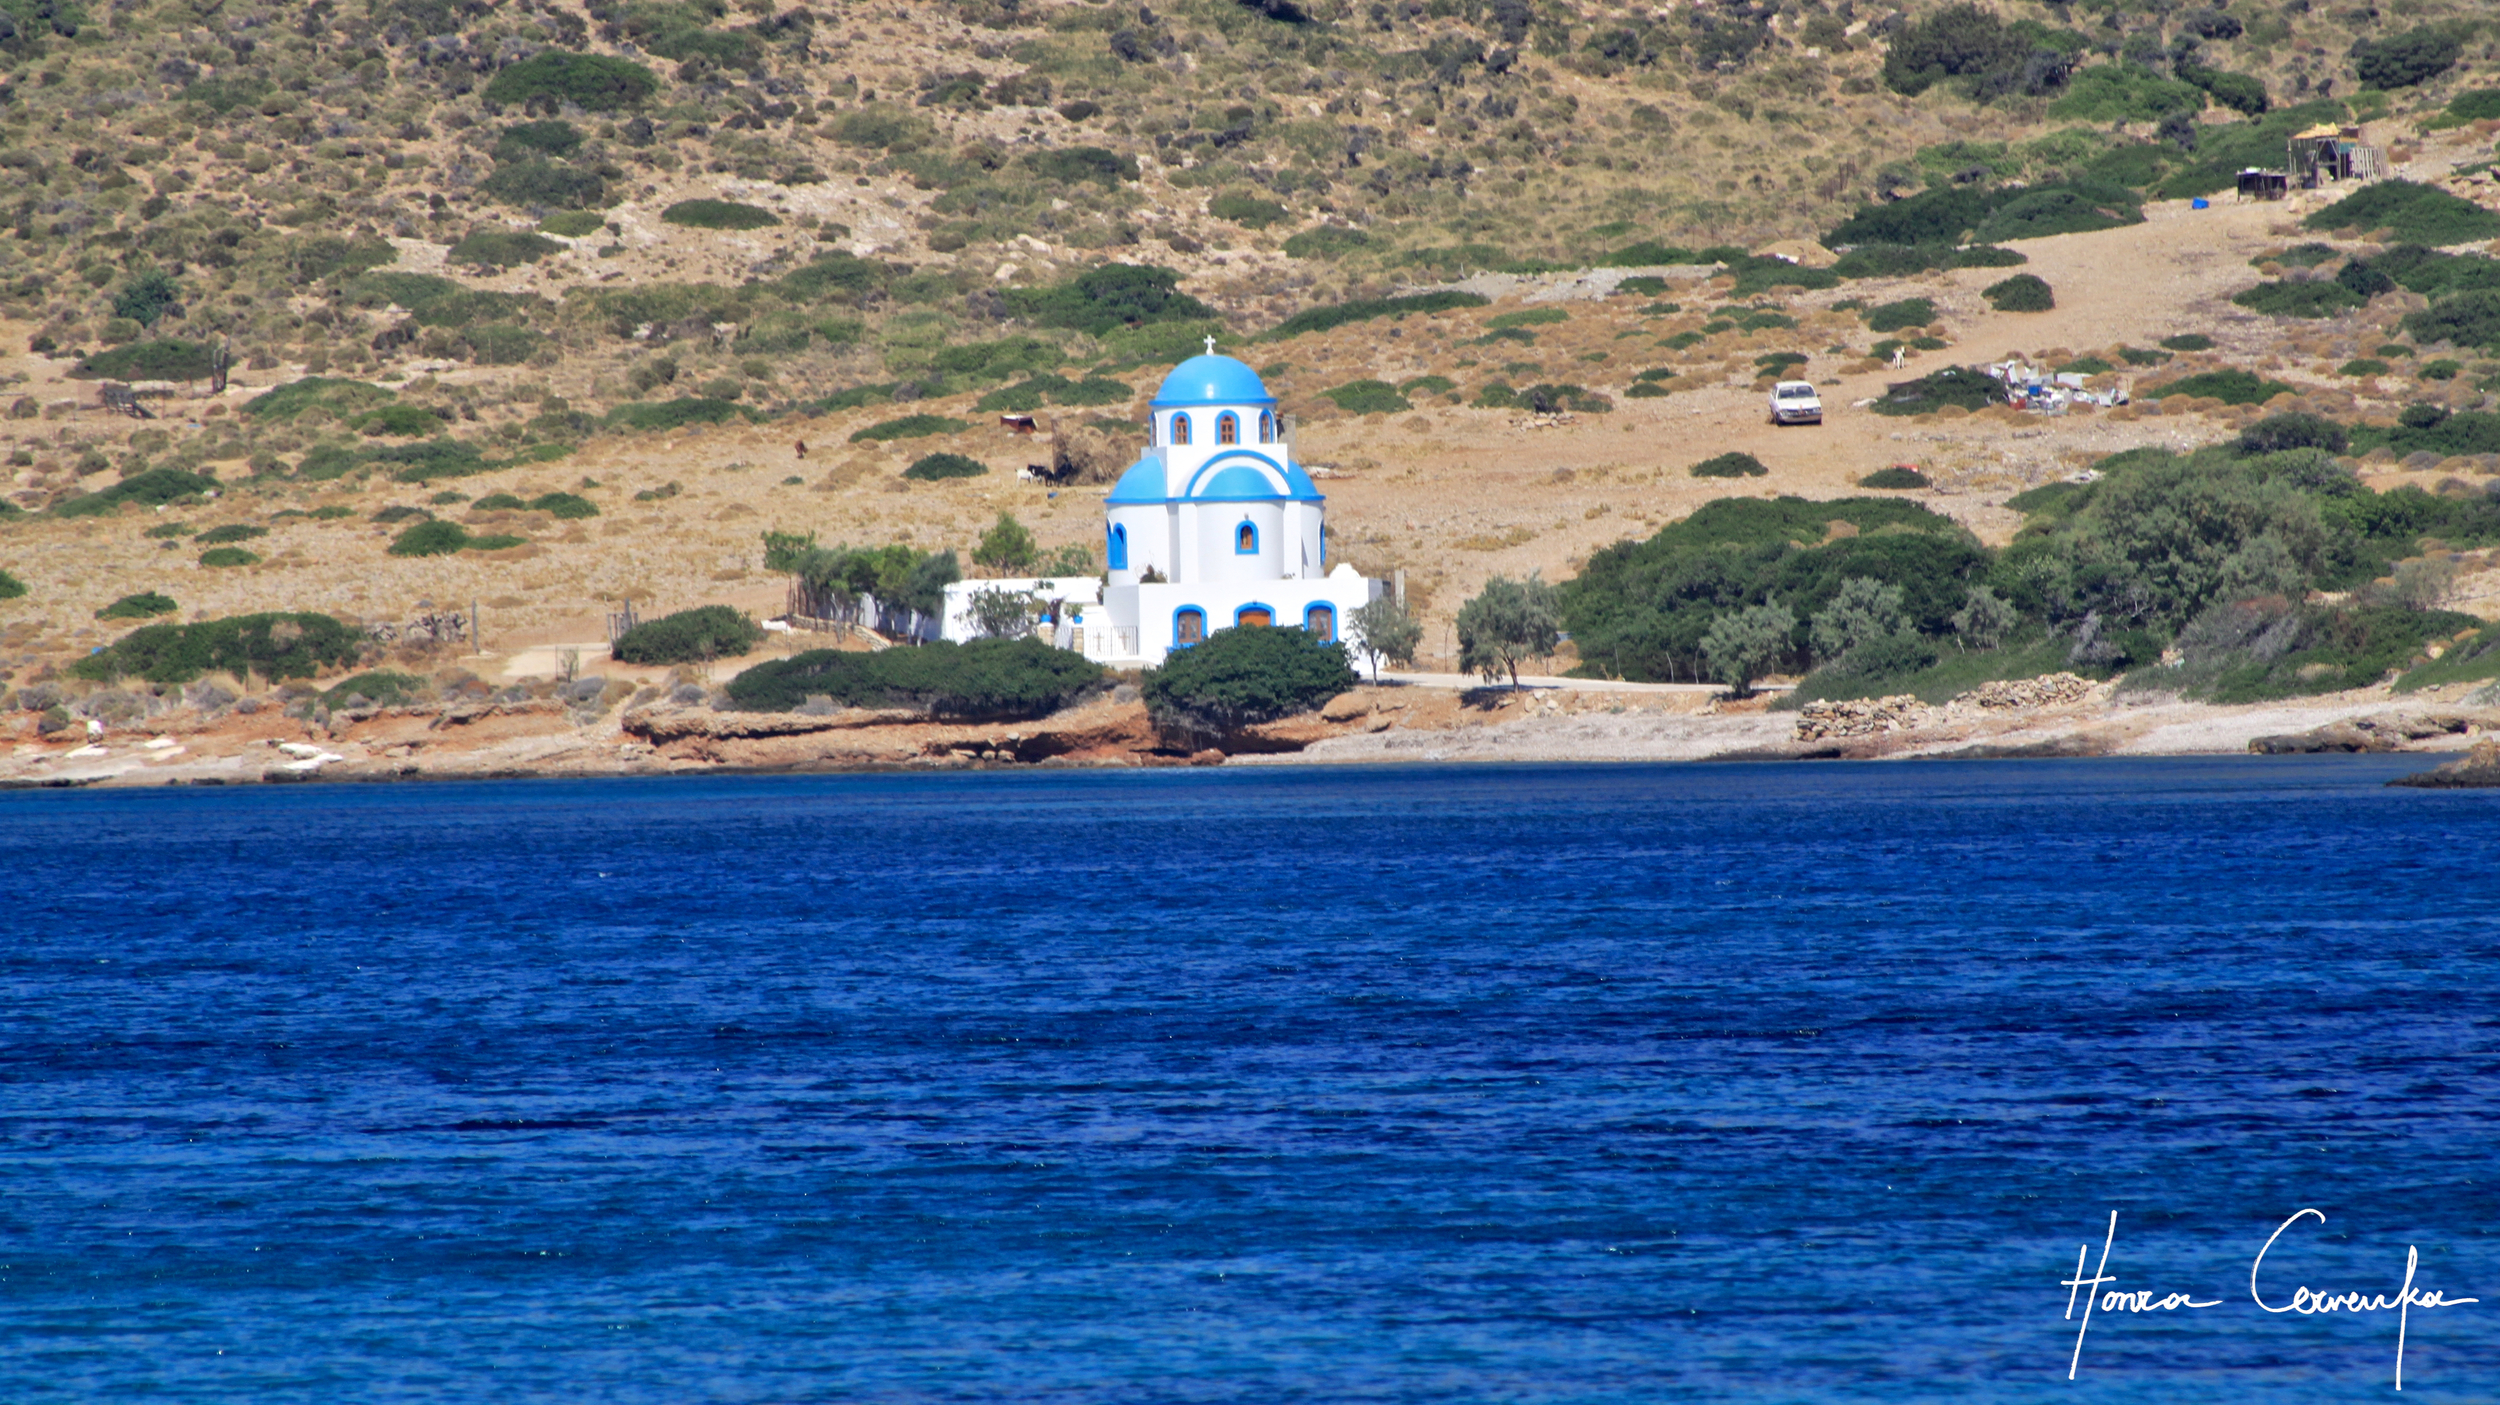 A church on the other side of the bay.